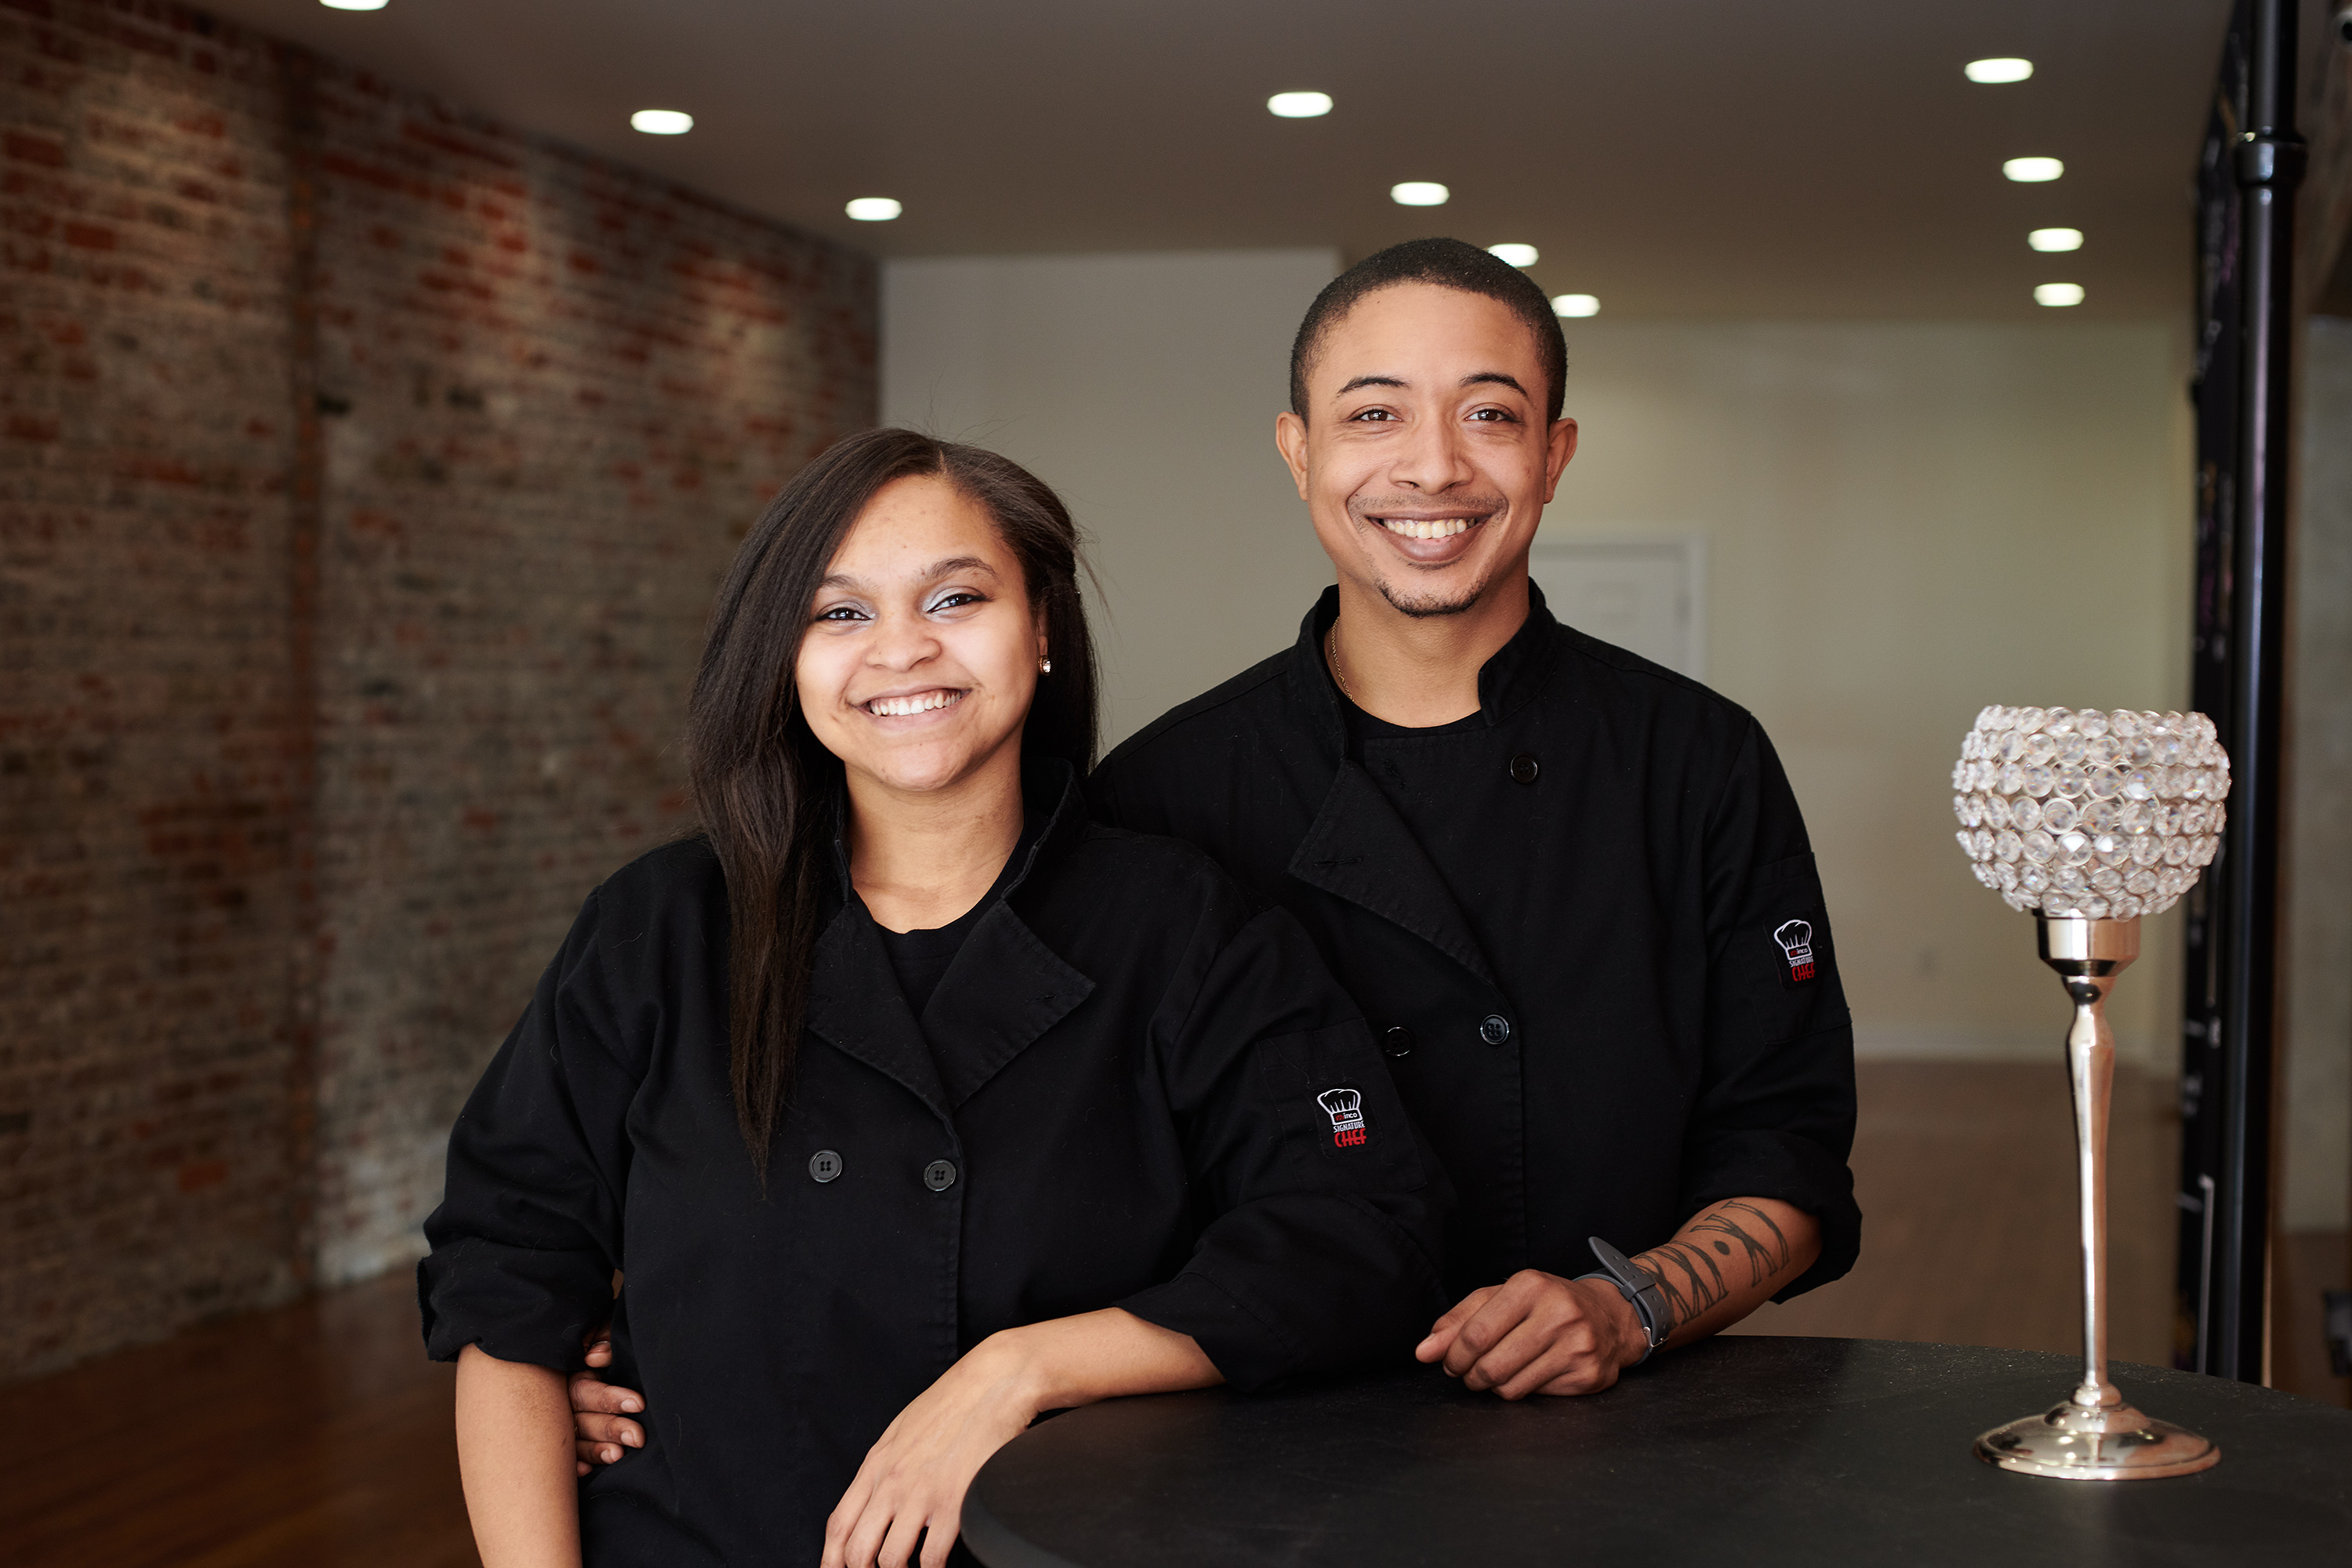 woman and man in black chef's coats